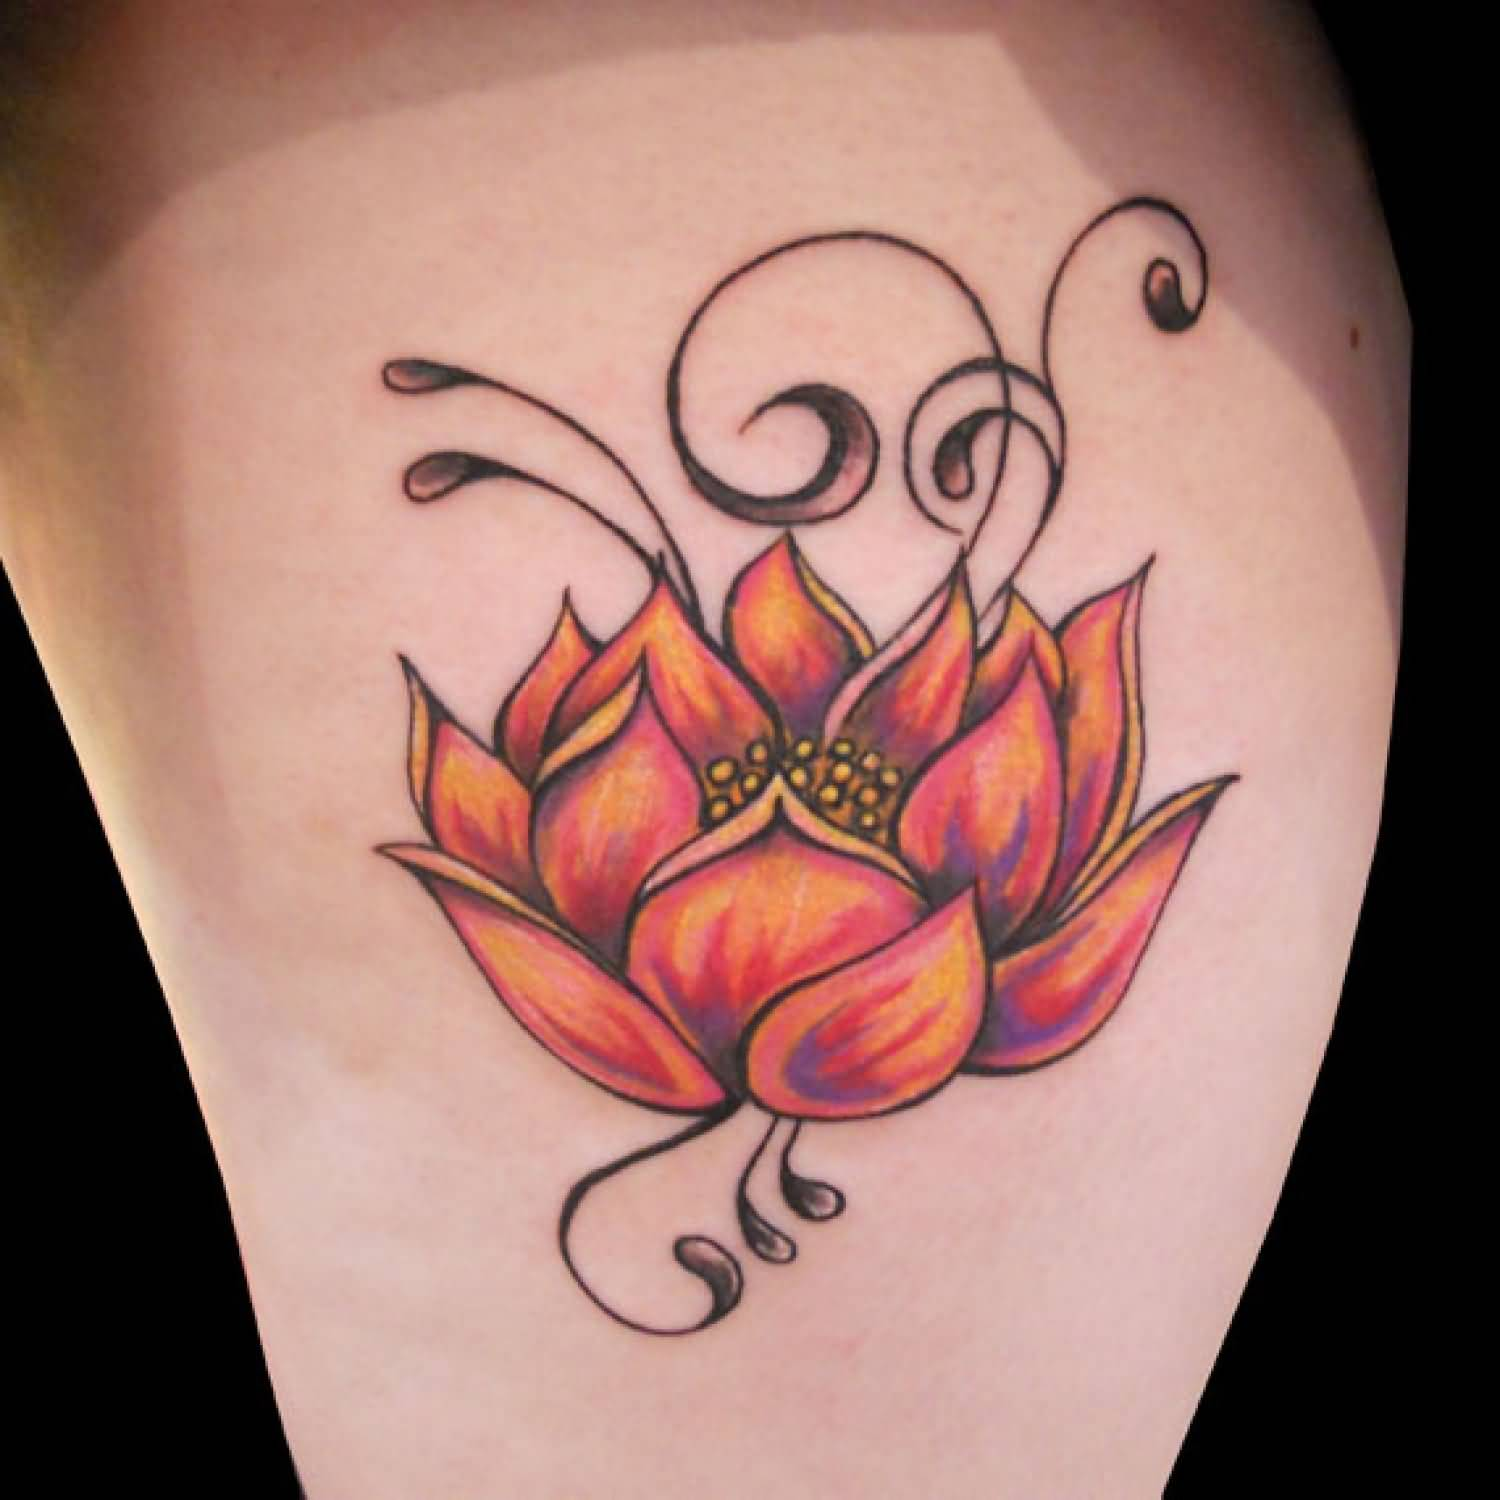 Lotus tattoo ideas and lotus tattoo designs page 4 for White lotus tattoo